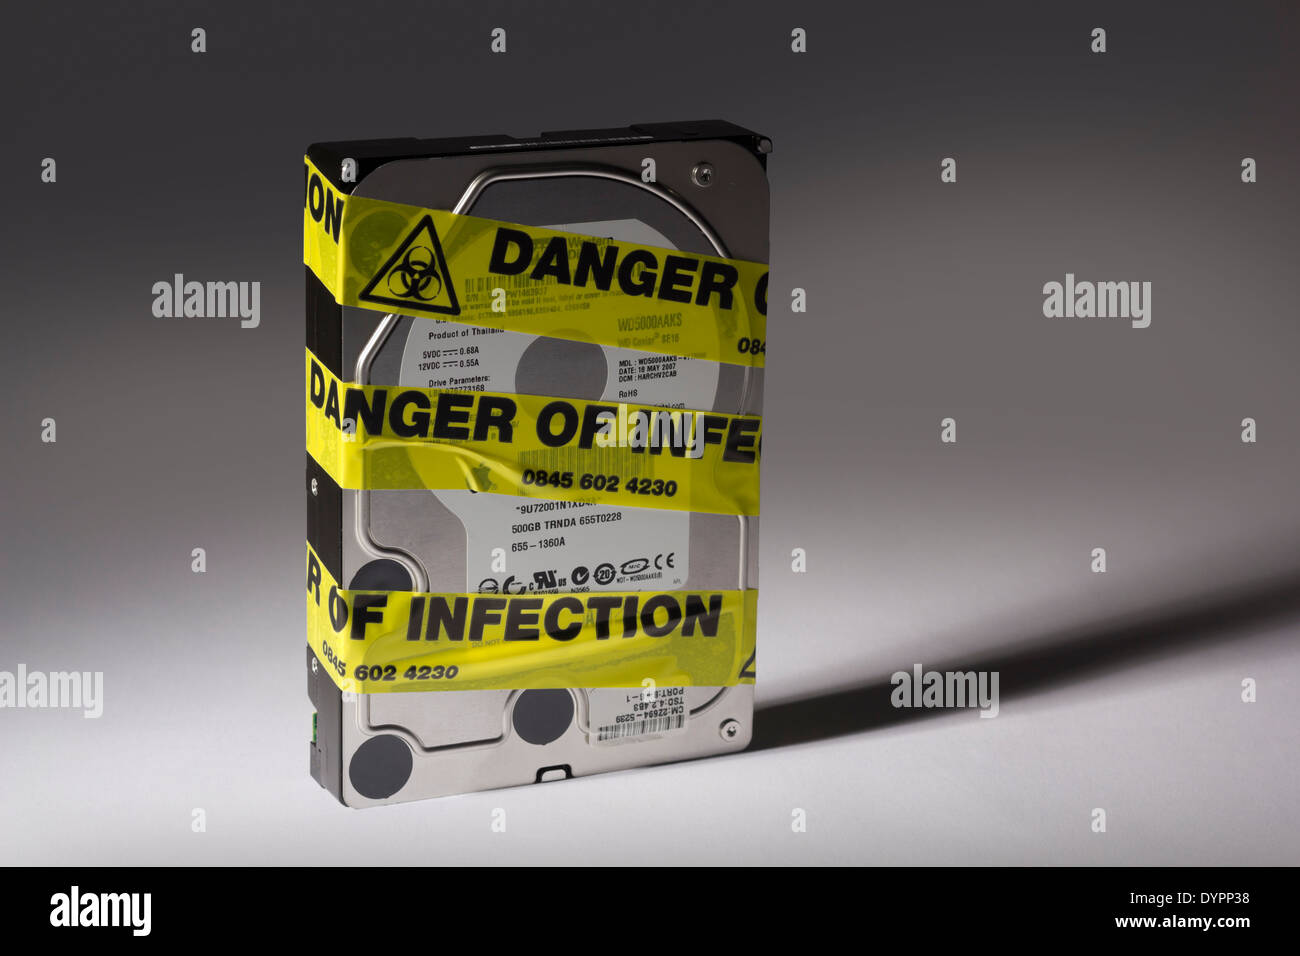 Computer Hard Drive With Yellow 'Risk Of Infection' Tape Around It. - Stock Image